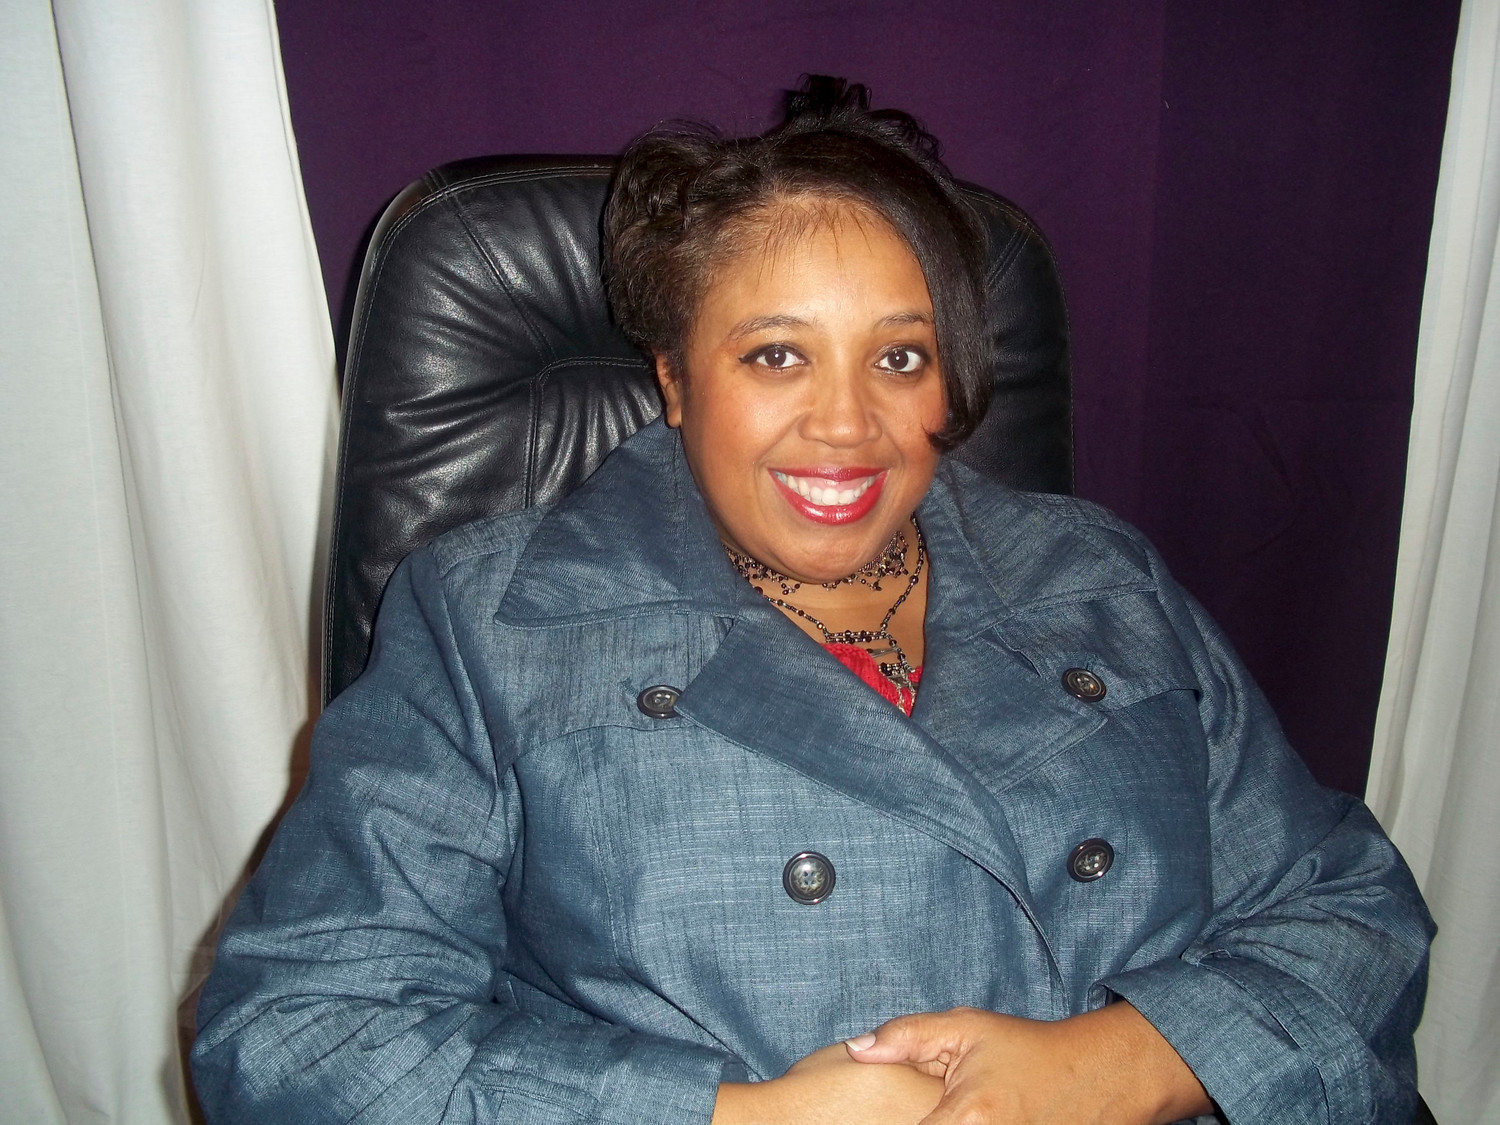 Denice Evans-Sheppard is committed to engaging the community.